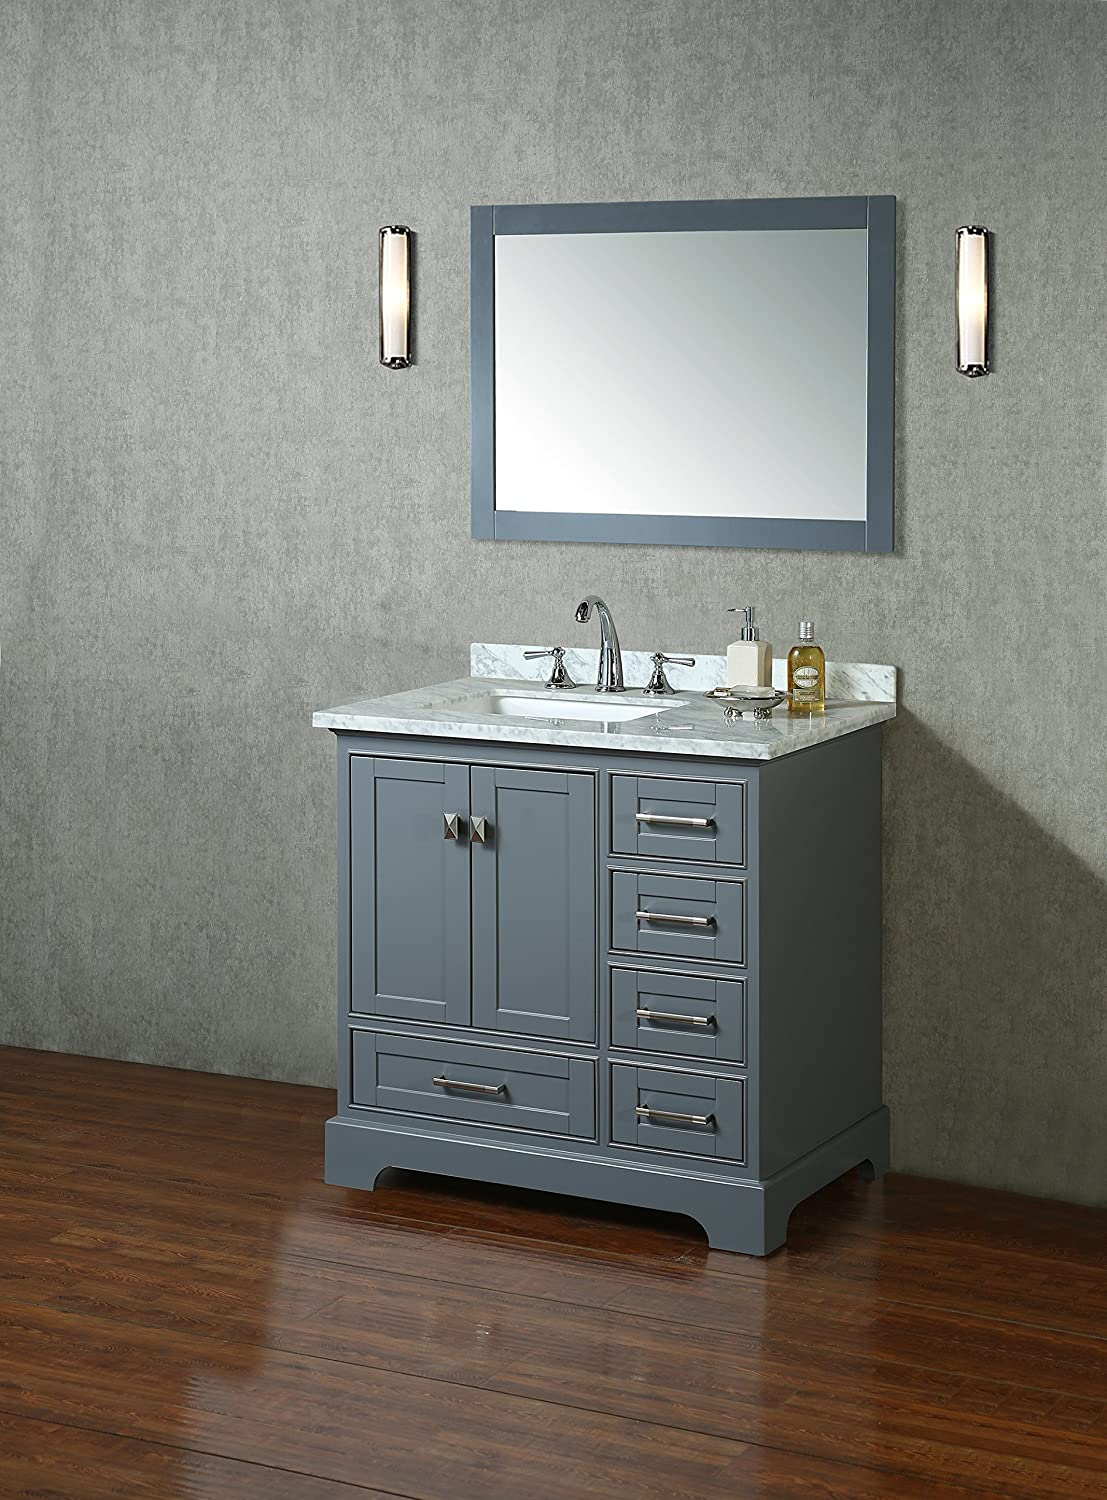 bathroom vanity set. Stufurhome HD 7130G 36 CR Newport Single Sink Bathroom Vanity Set  Grey Amazon com